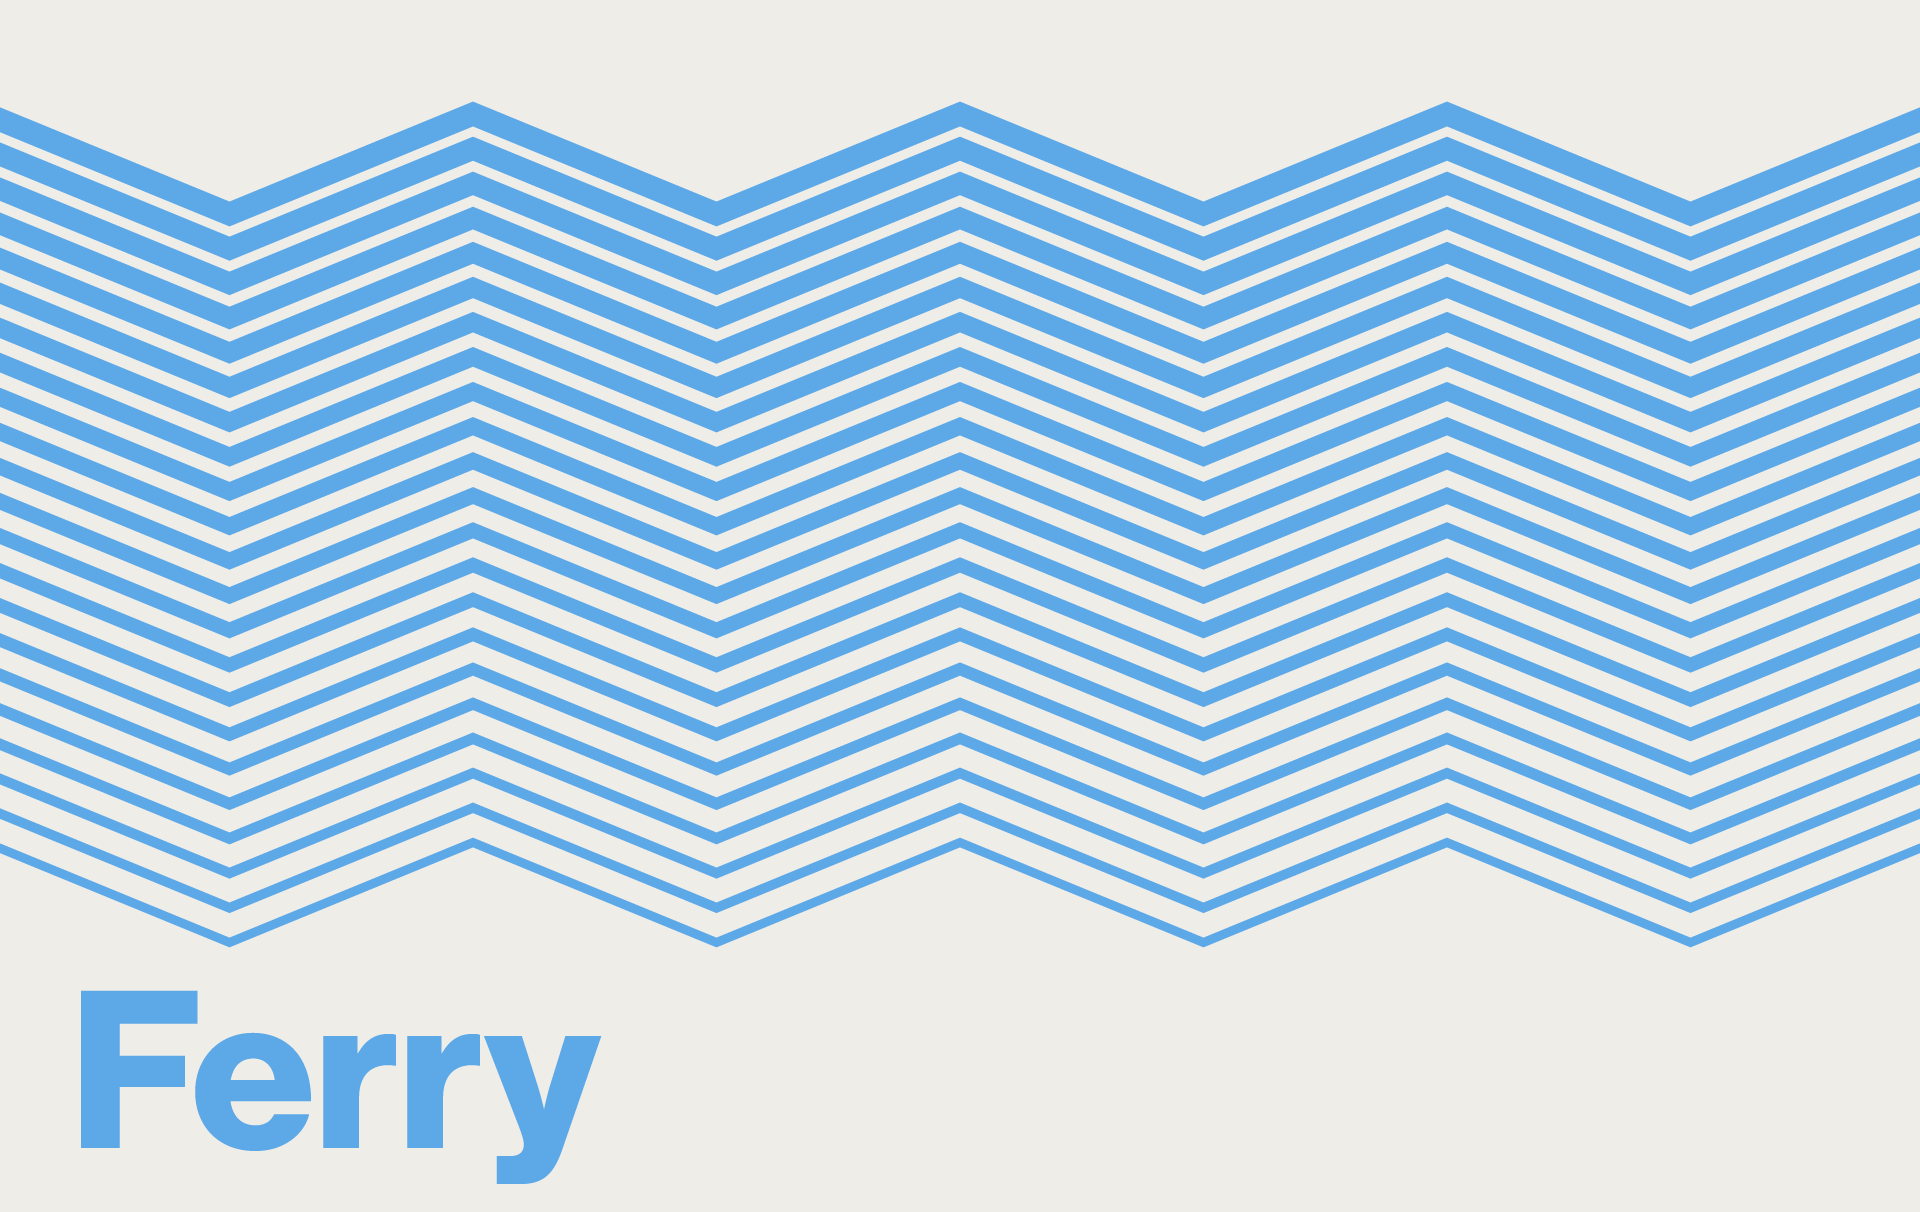 Clickable graphic resembling blue waves. Text: Ferry